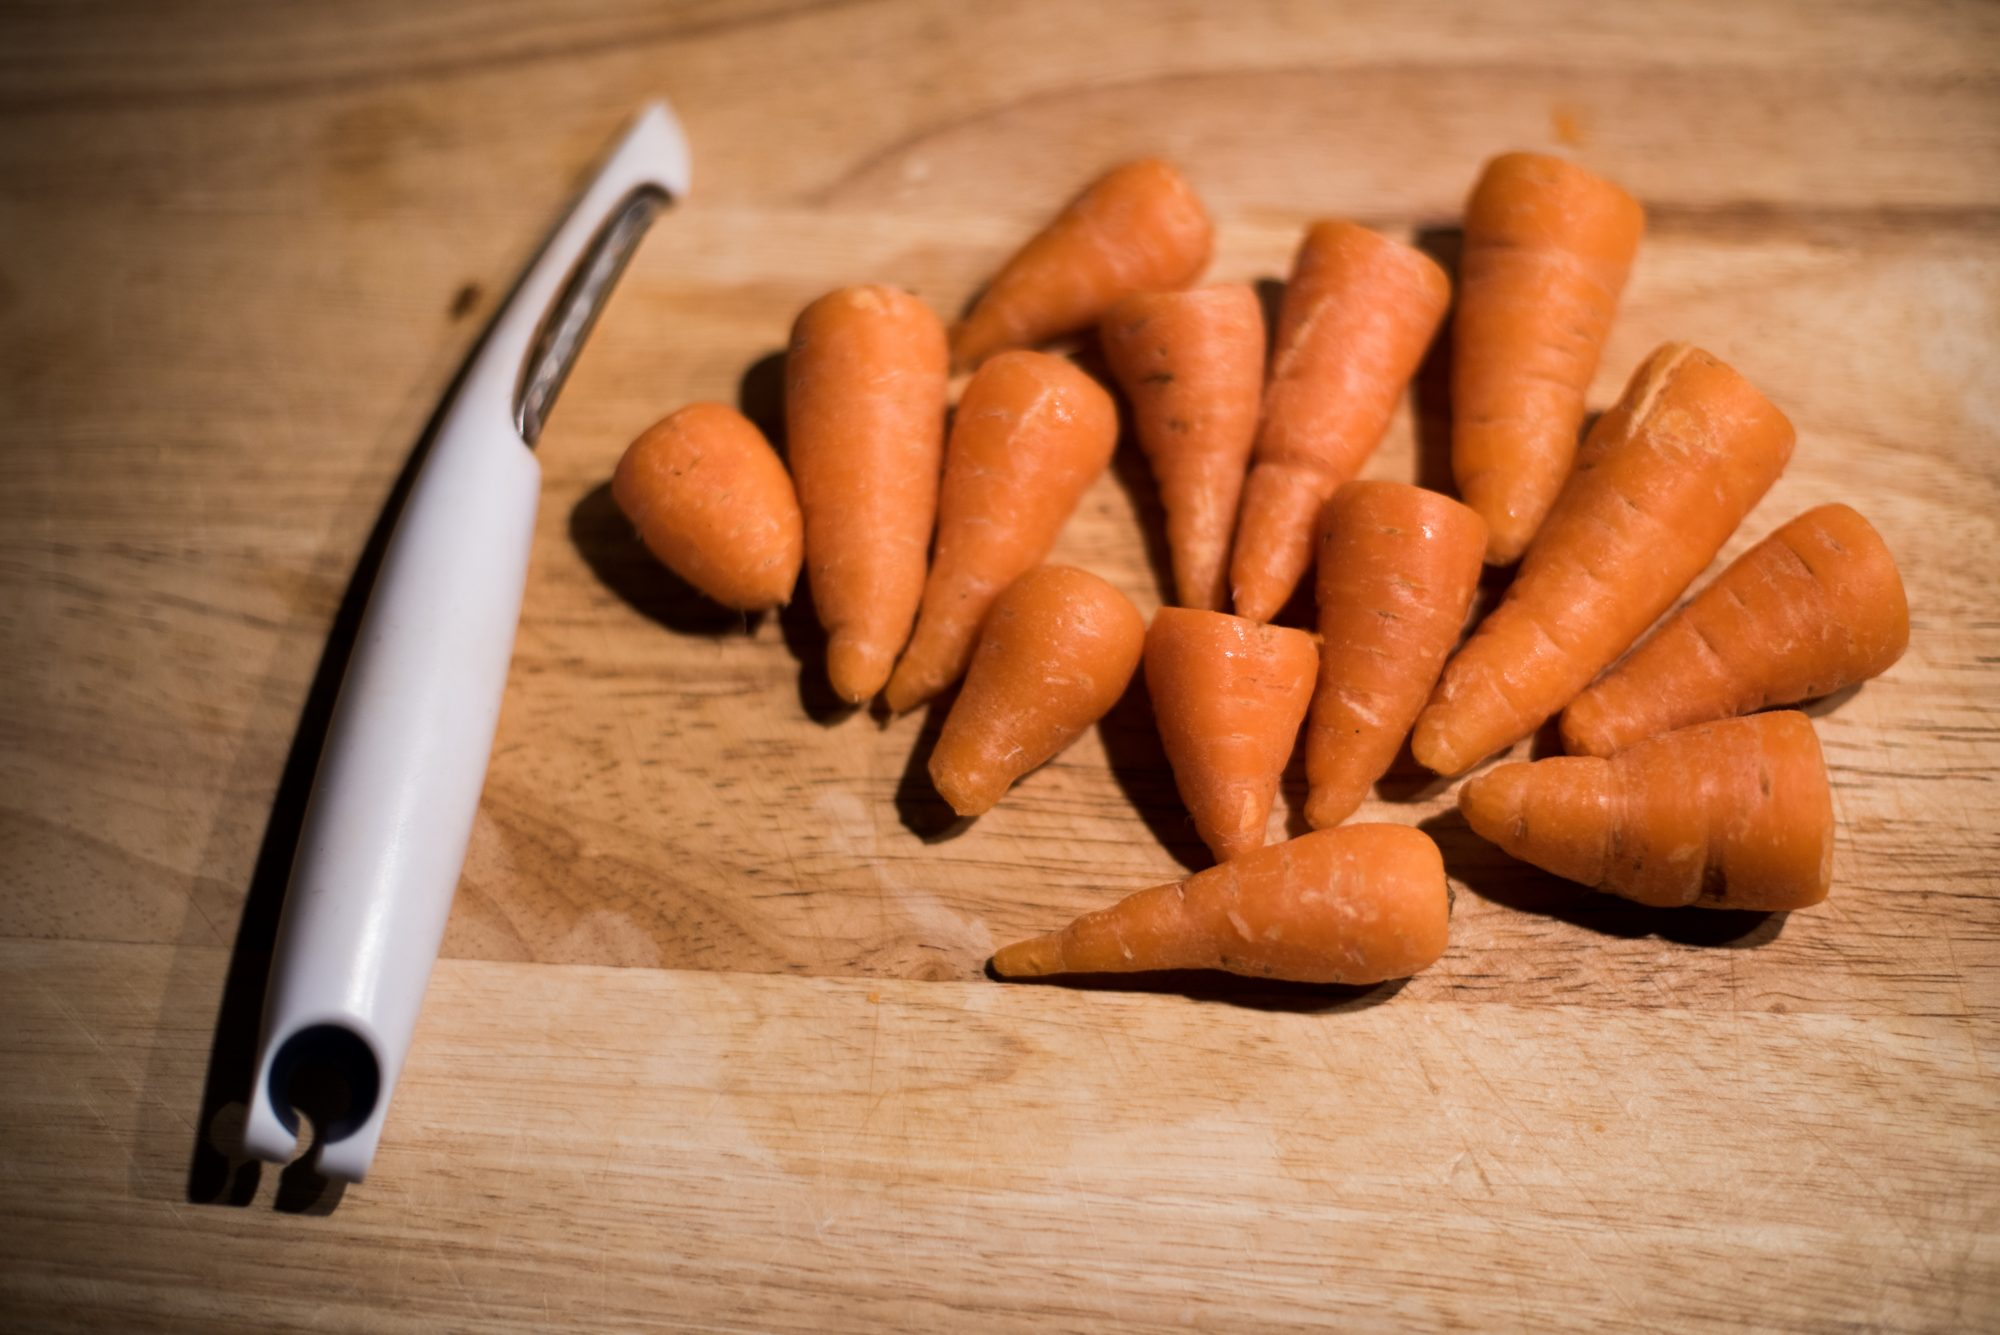 How to Salvage a Bag of Carrots That Are Past Their Prime